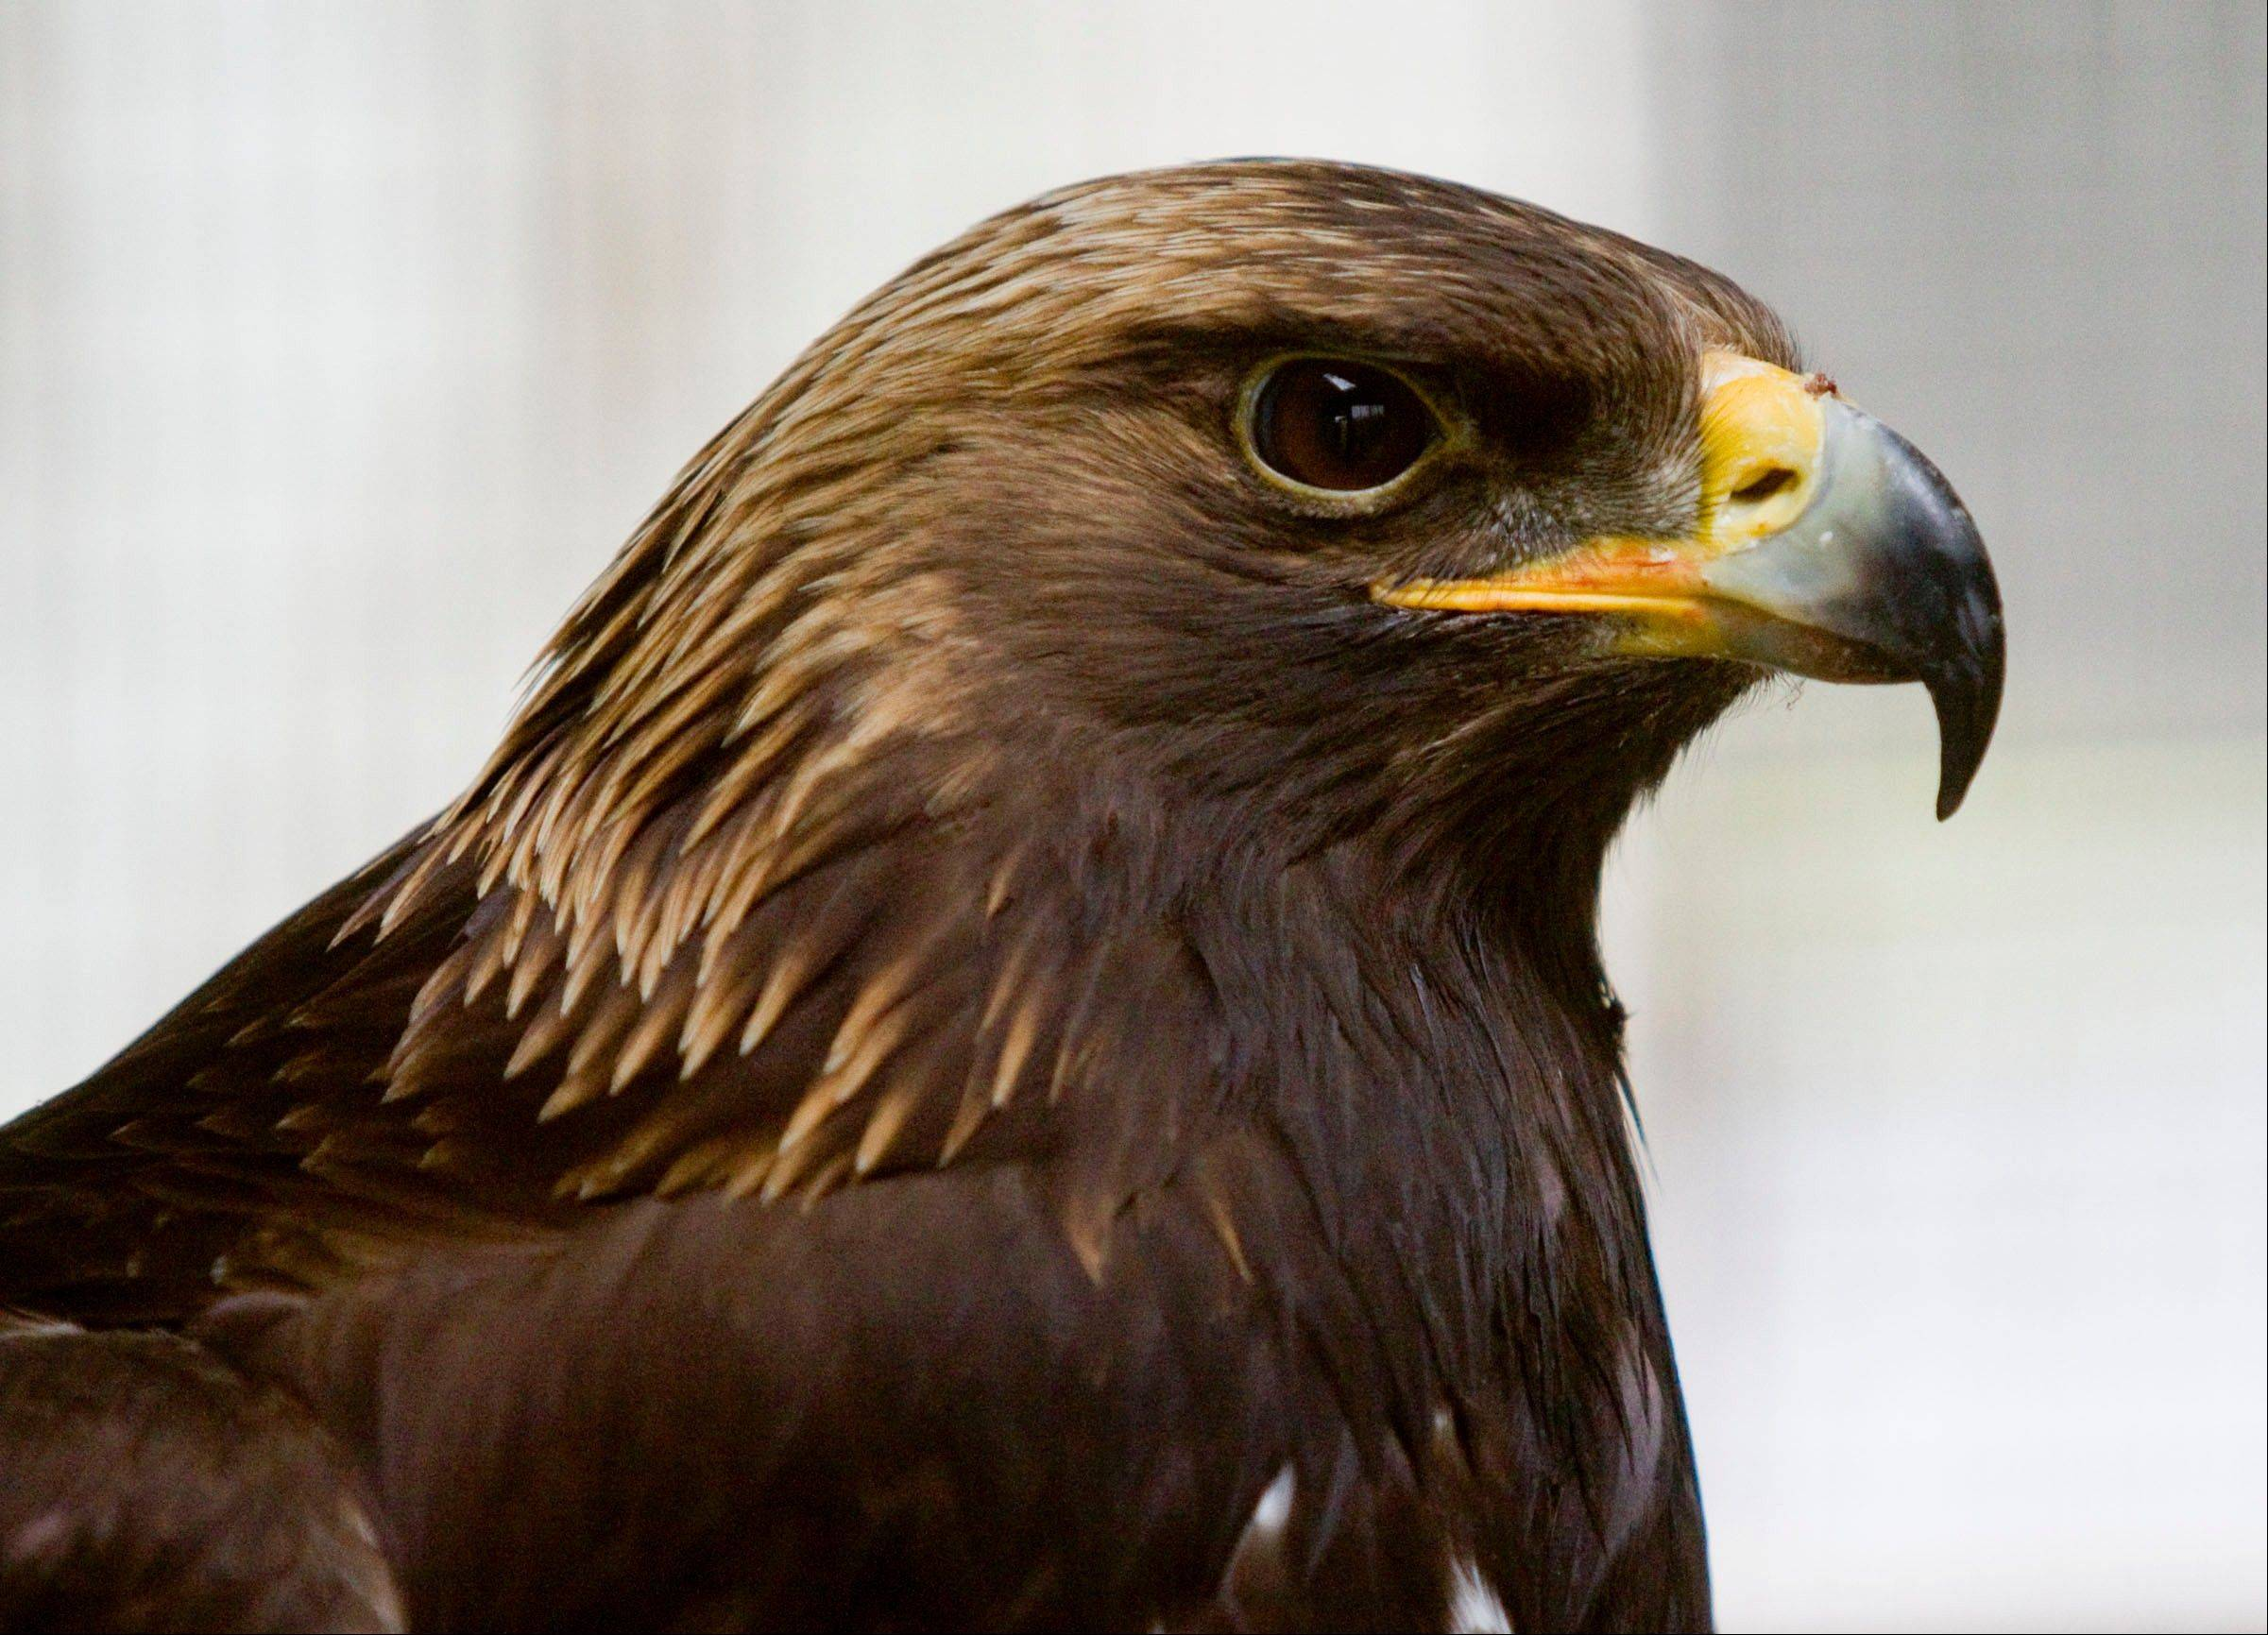 Midas, a golden eagle, was found suffering from a broken wing in a field near Sadorus, Ill.